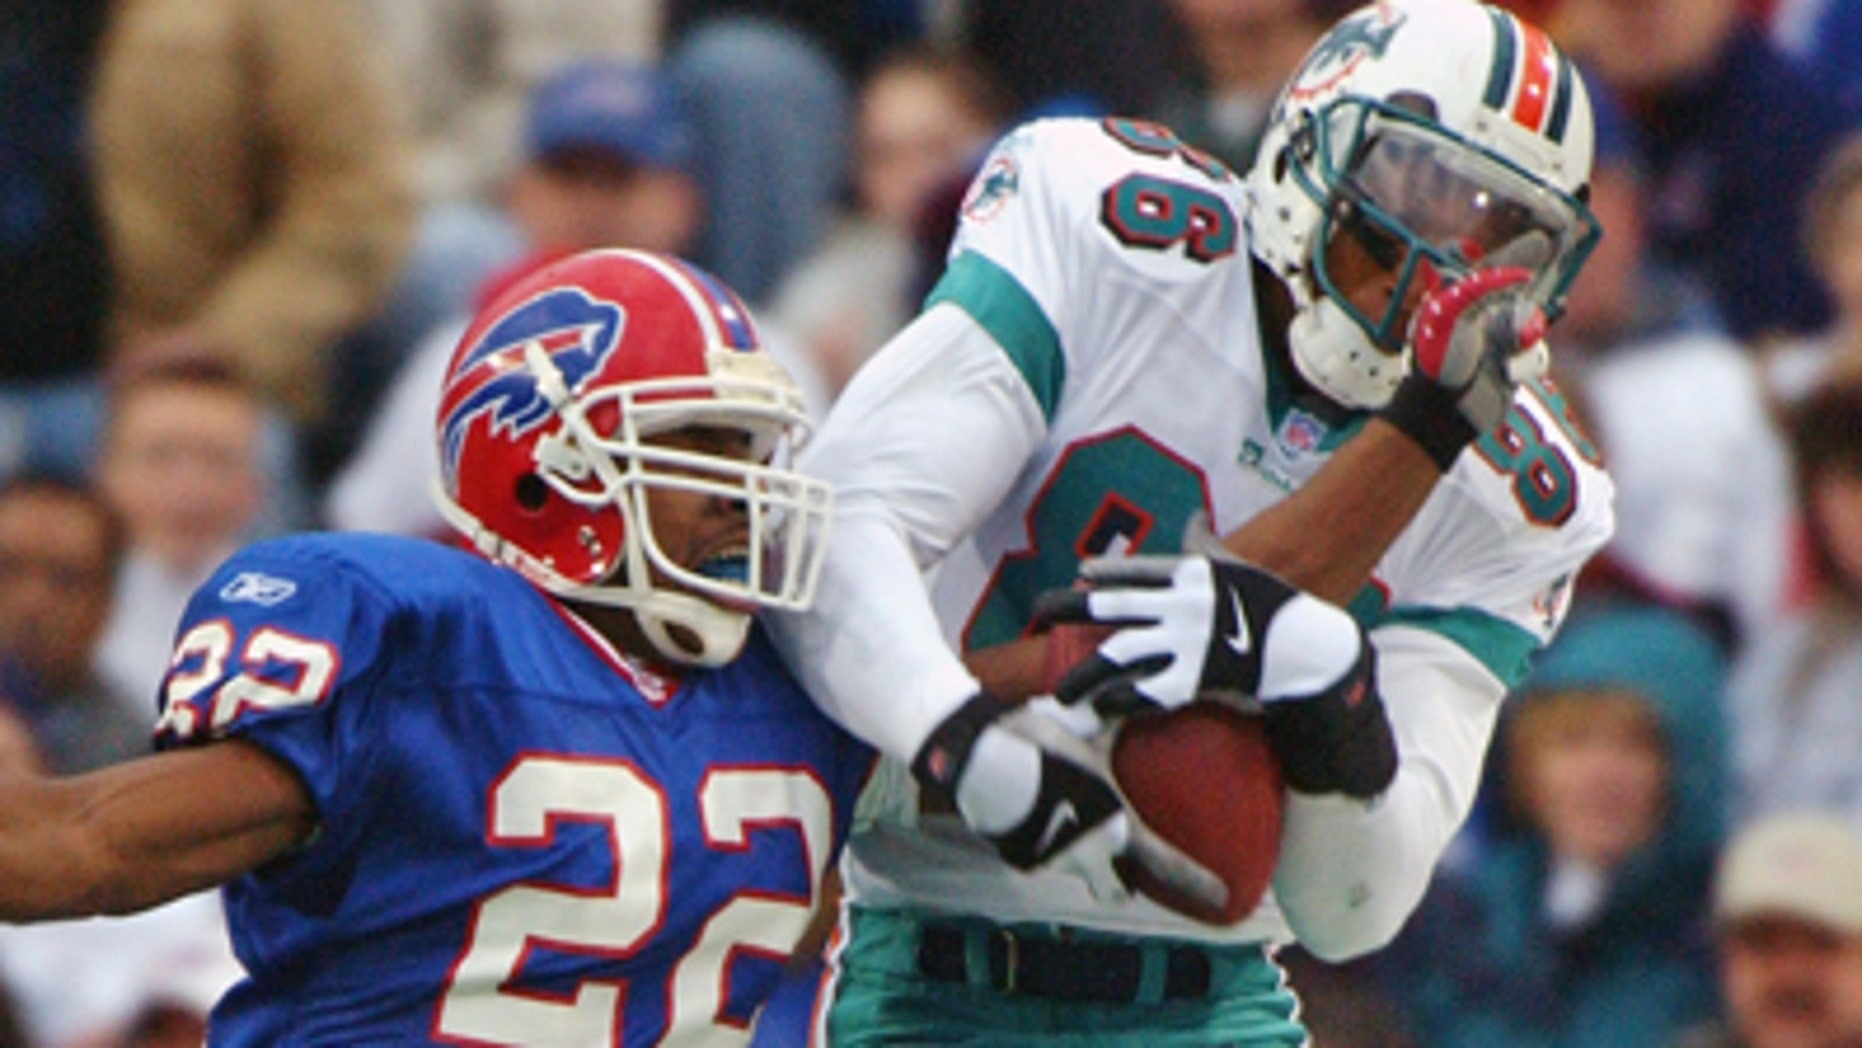 Nov. 25, 2001: Miami Dolphins' Oronde Gadsden, right, hauls in a pass under pressure from Buffalo Bills' Nate Clements during the second half of an NFL football game in Orchard Park, N.Y. Gadsden is one of nearly two dozen former NFL players that are suing the league over severe and permanent brain damage they say is linked to concussions suffered on the job. (AP)